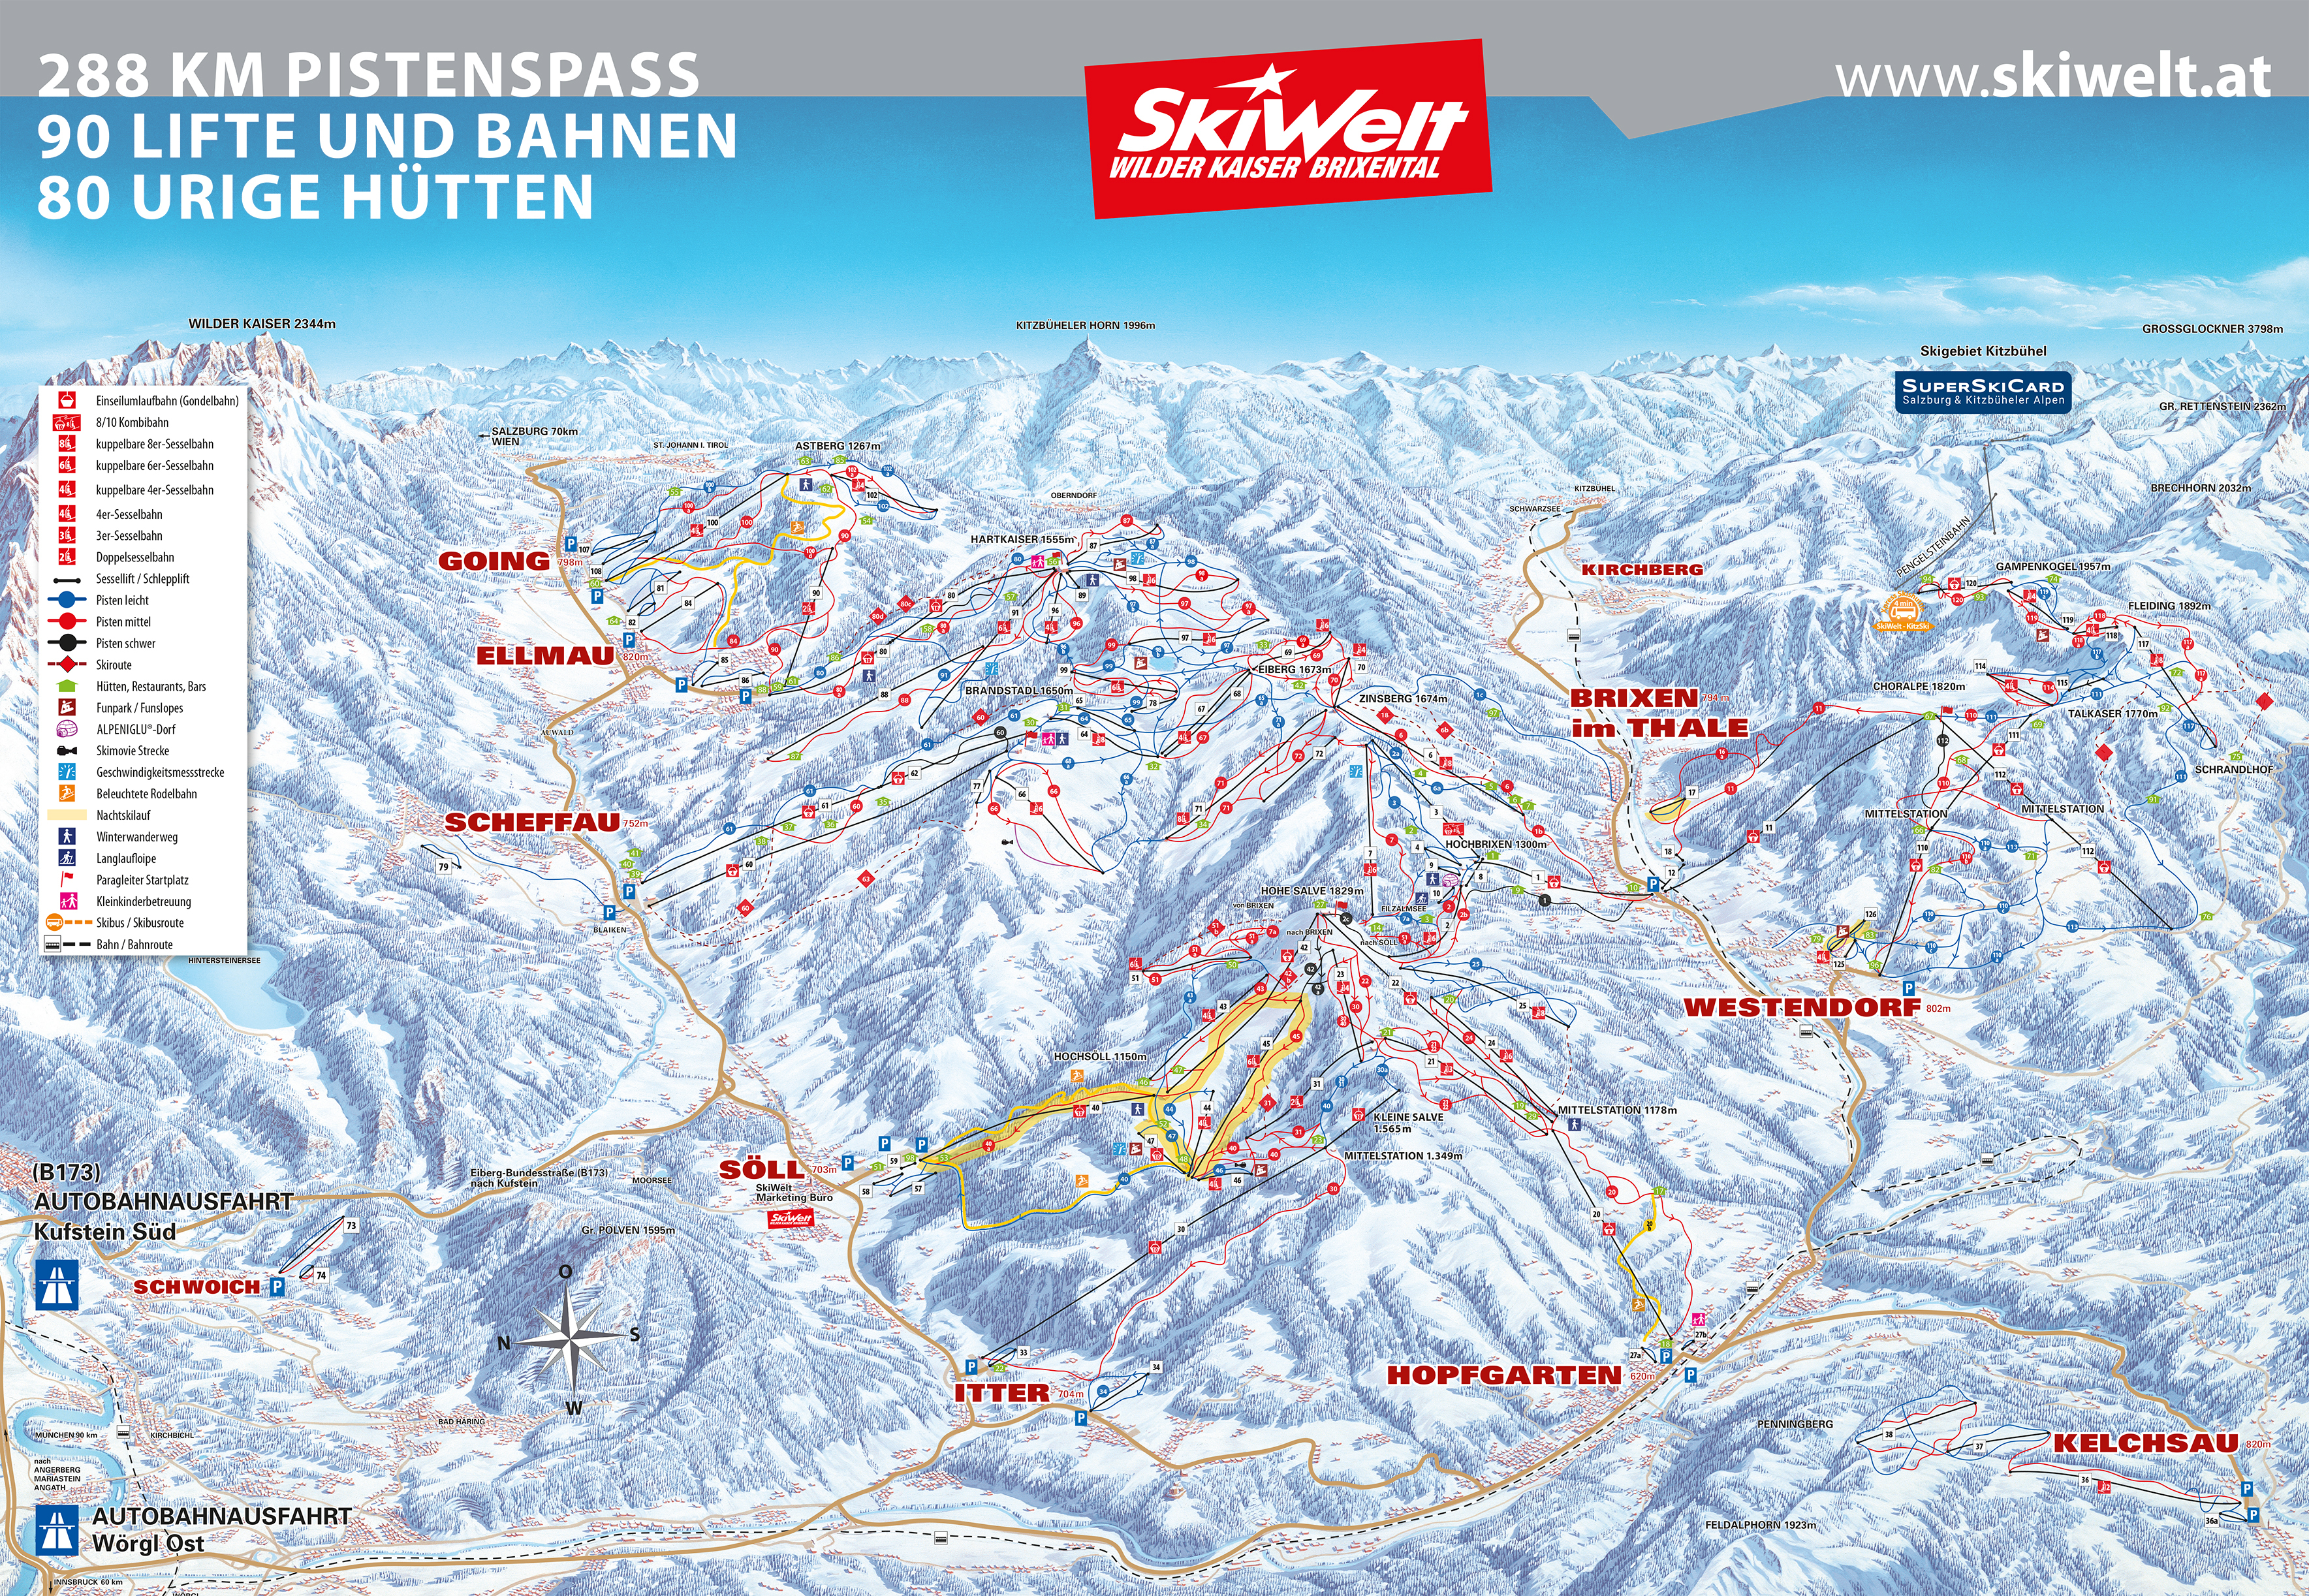 Ellmau Piste / Trail Map